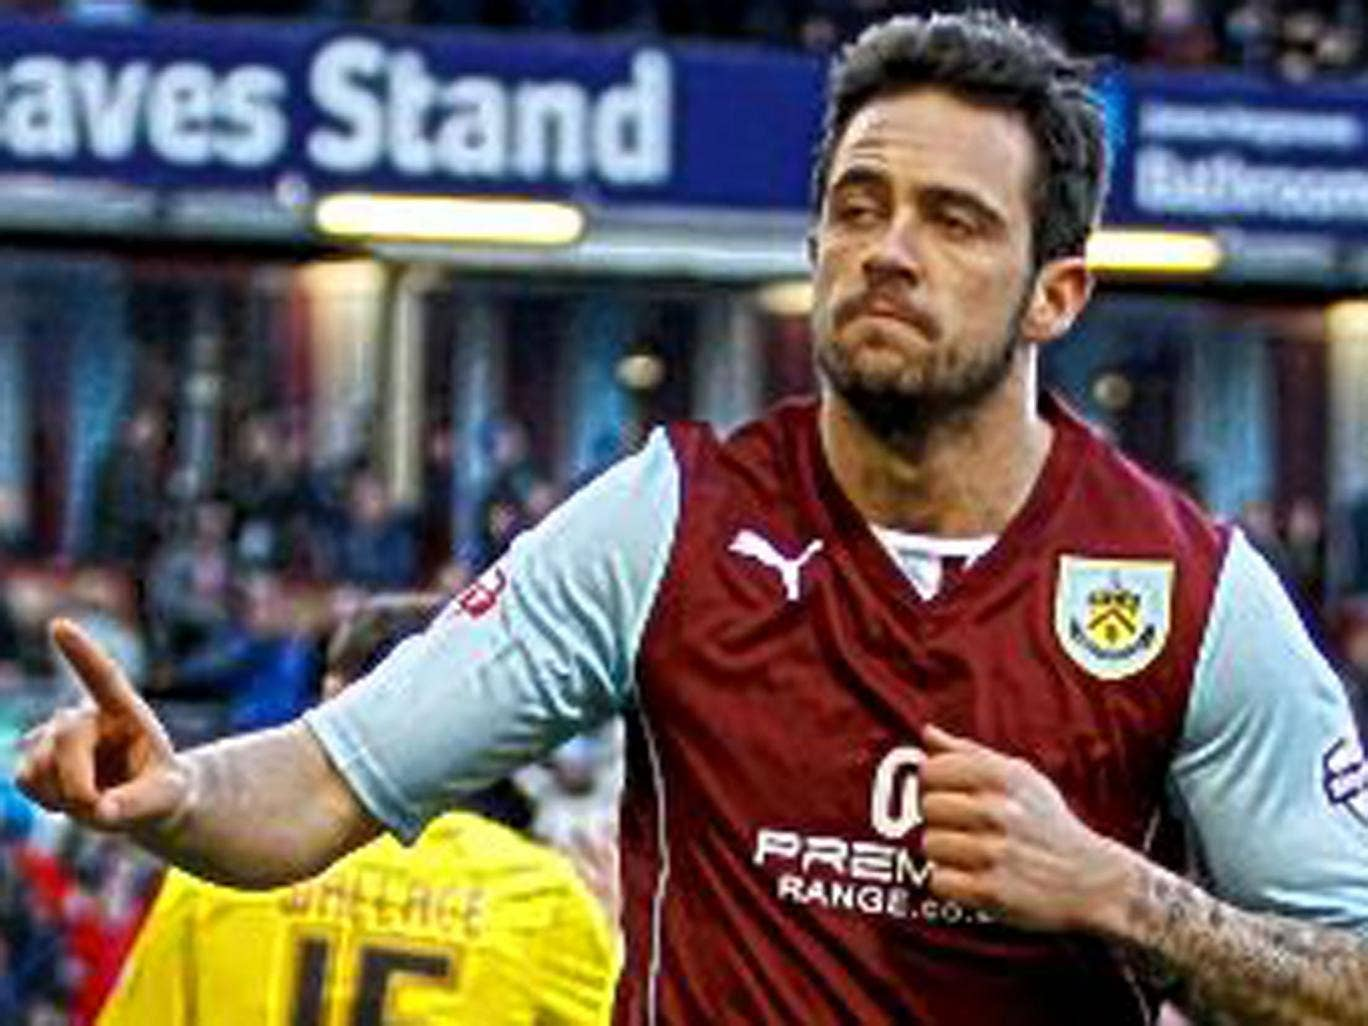 Two goals by Burnley's Danny Ings took his tally to 19